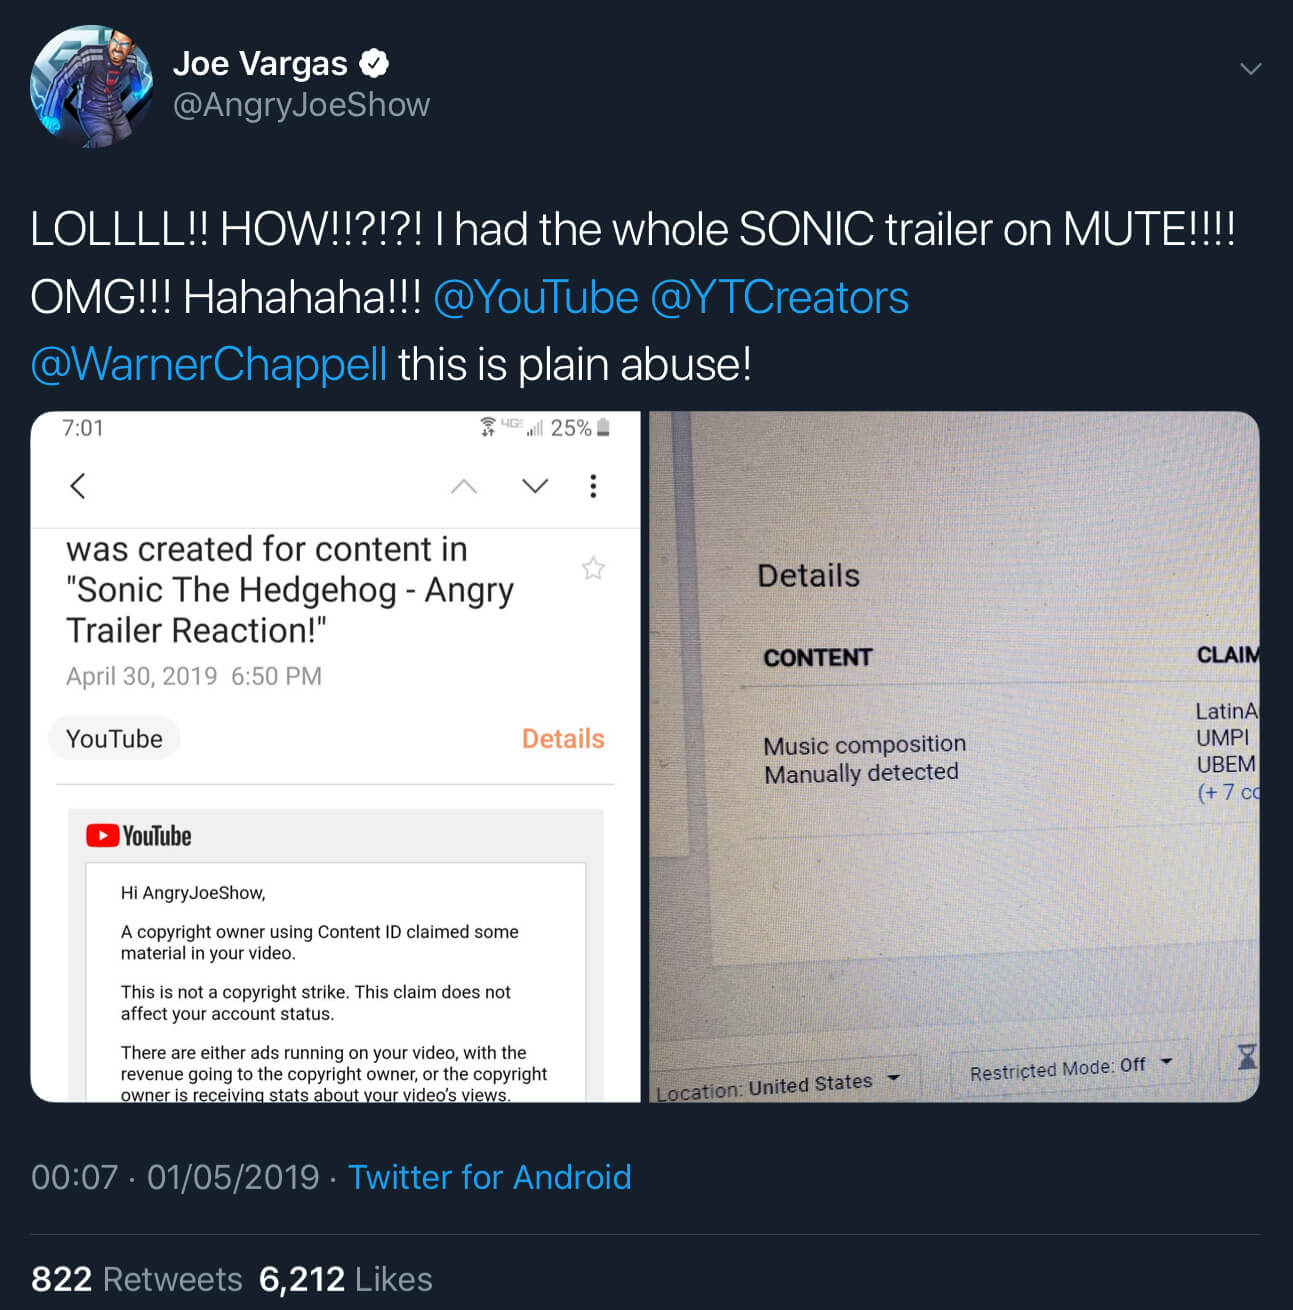 The fake copyright claim filed against Joe Vargas's Sonic the Hedgehog trailer reaction video.